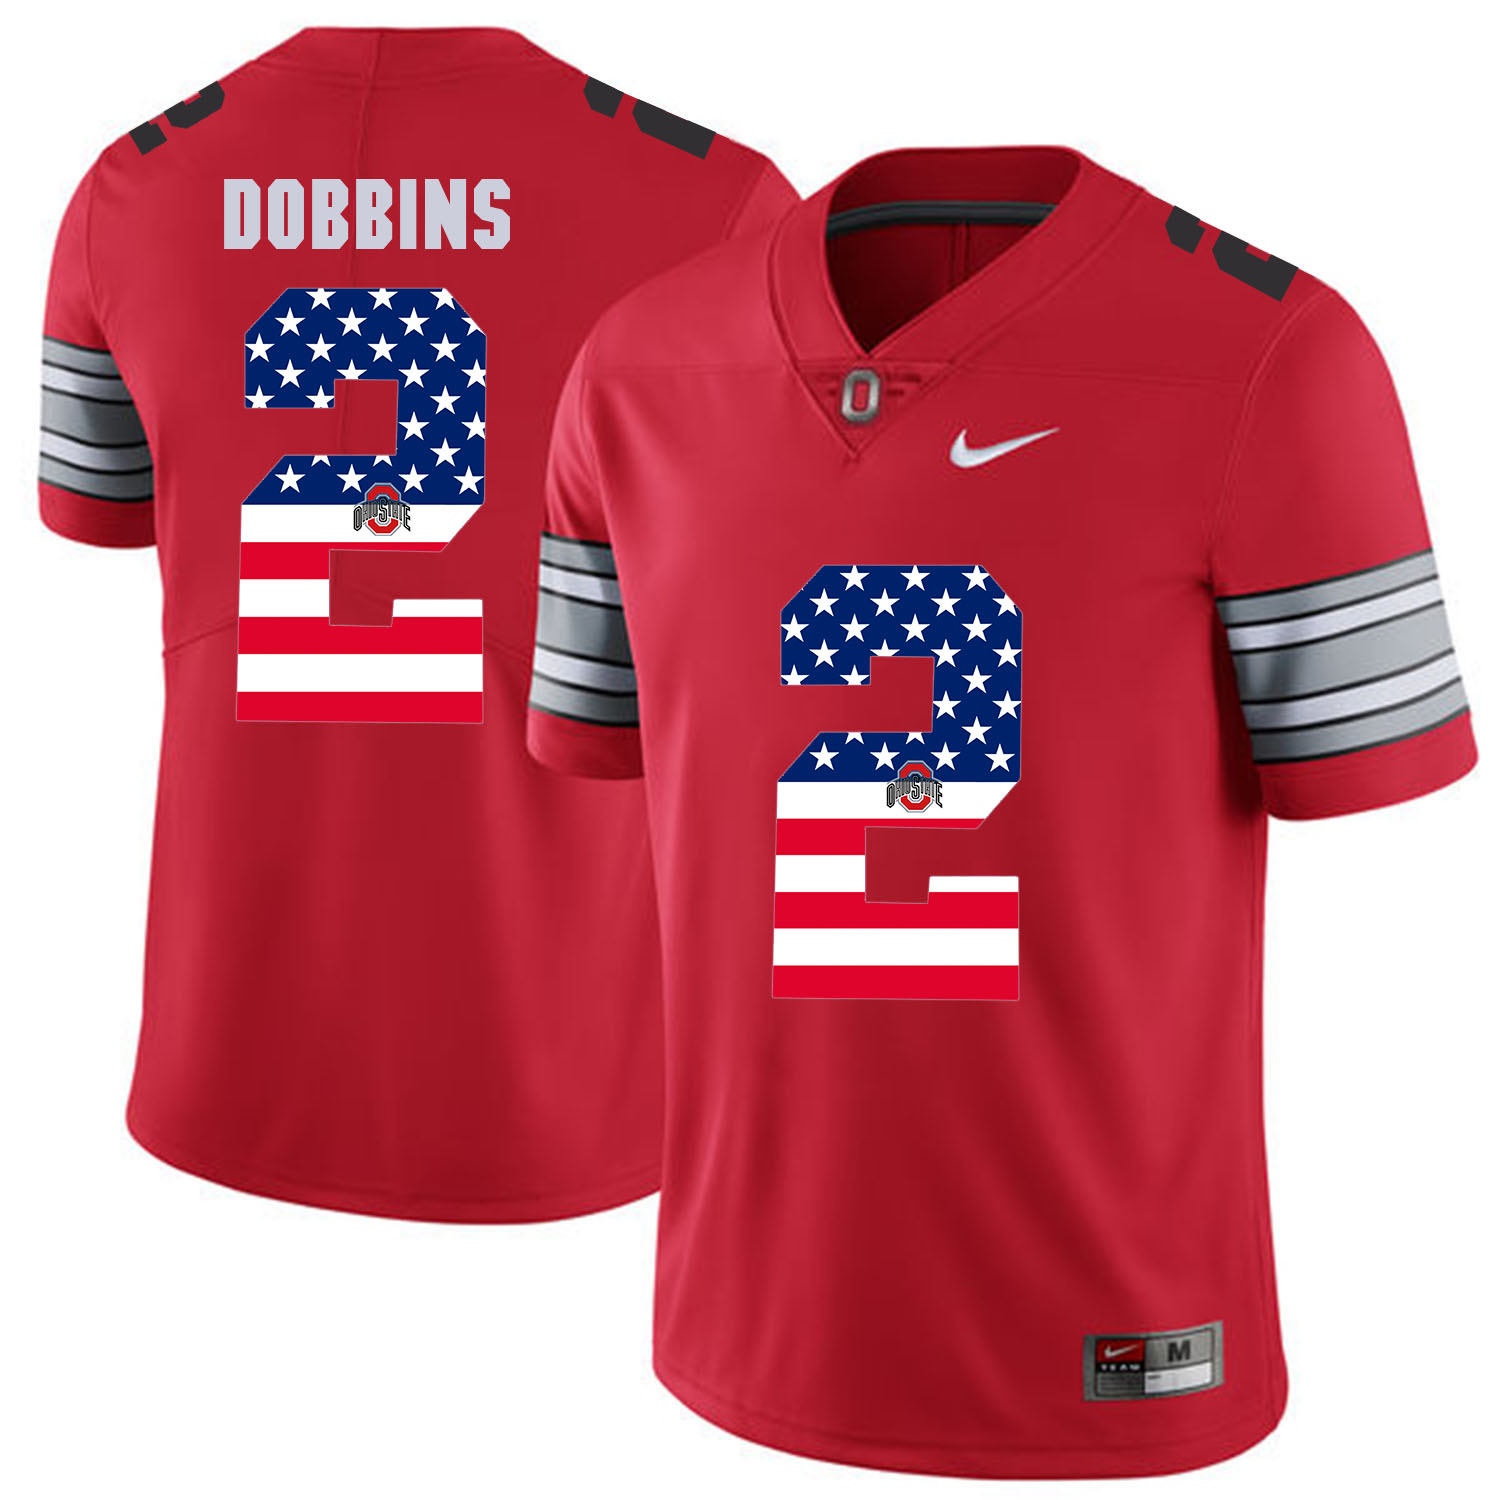 Men Ohio State 2 Dobbins Red Flag Customized NCAA Jerseys